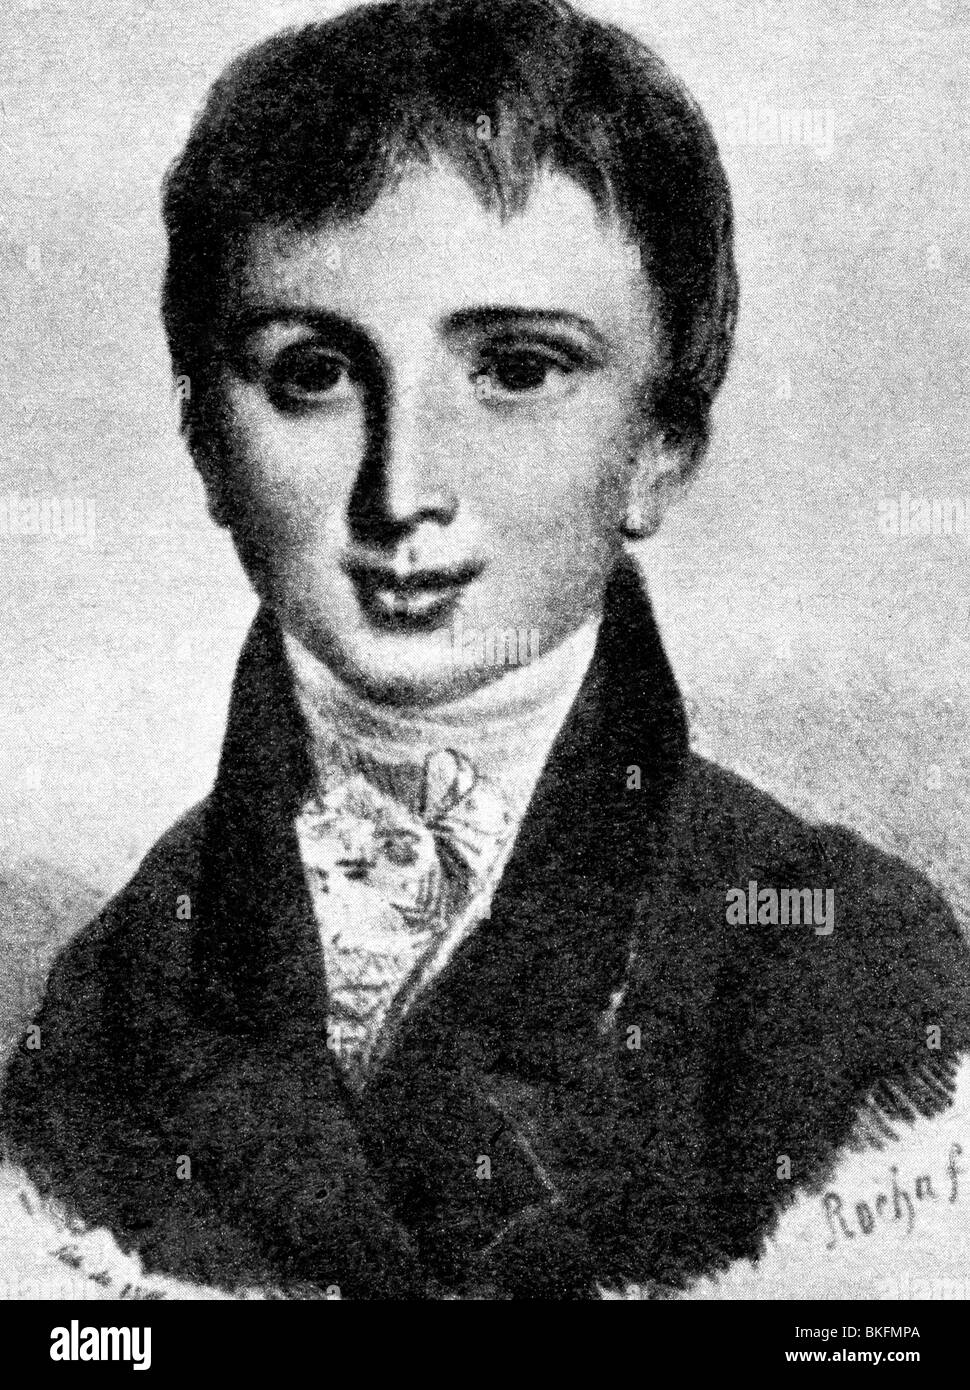 Liszt, Franz, 22.10.1811 - 31.7.1886, Hungarian composer and pianist, as child, eleven years old, 1823, , Additional - Stock Image